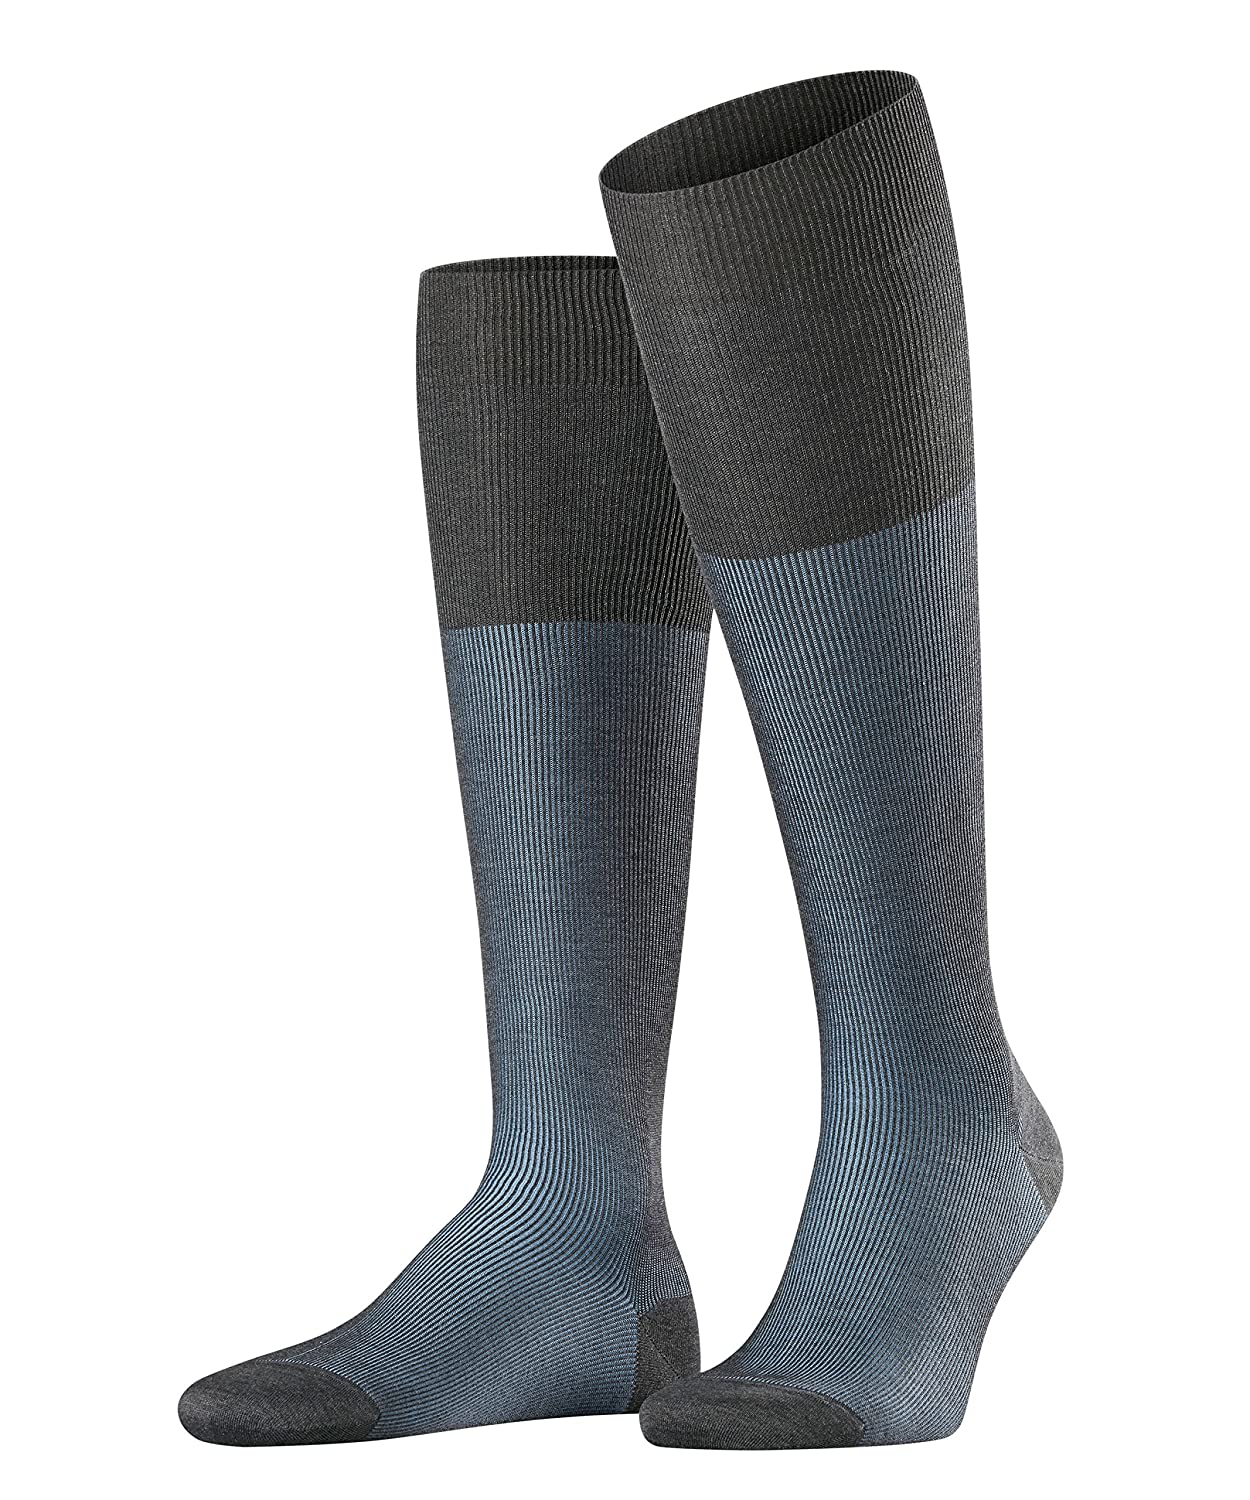 FALKE Fine Shadow Men Knee-high Socks